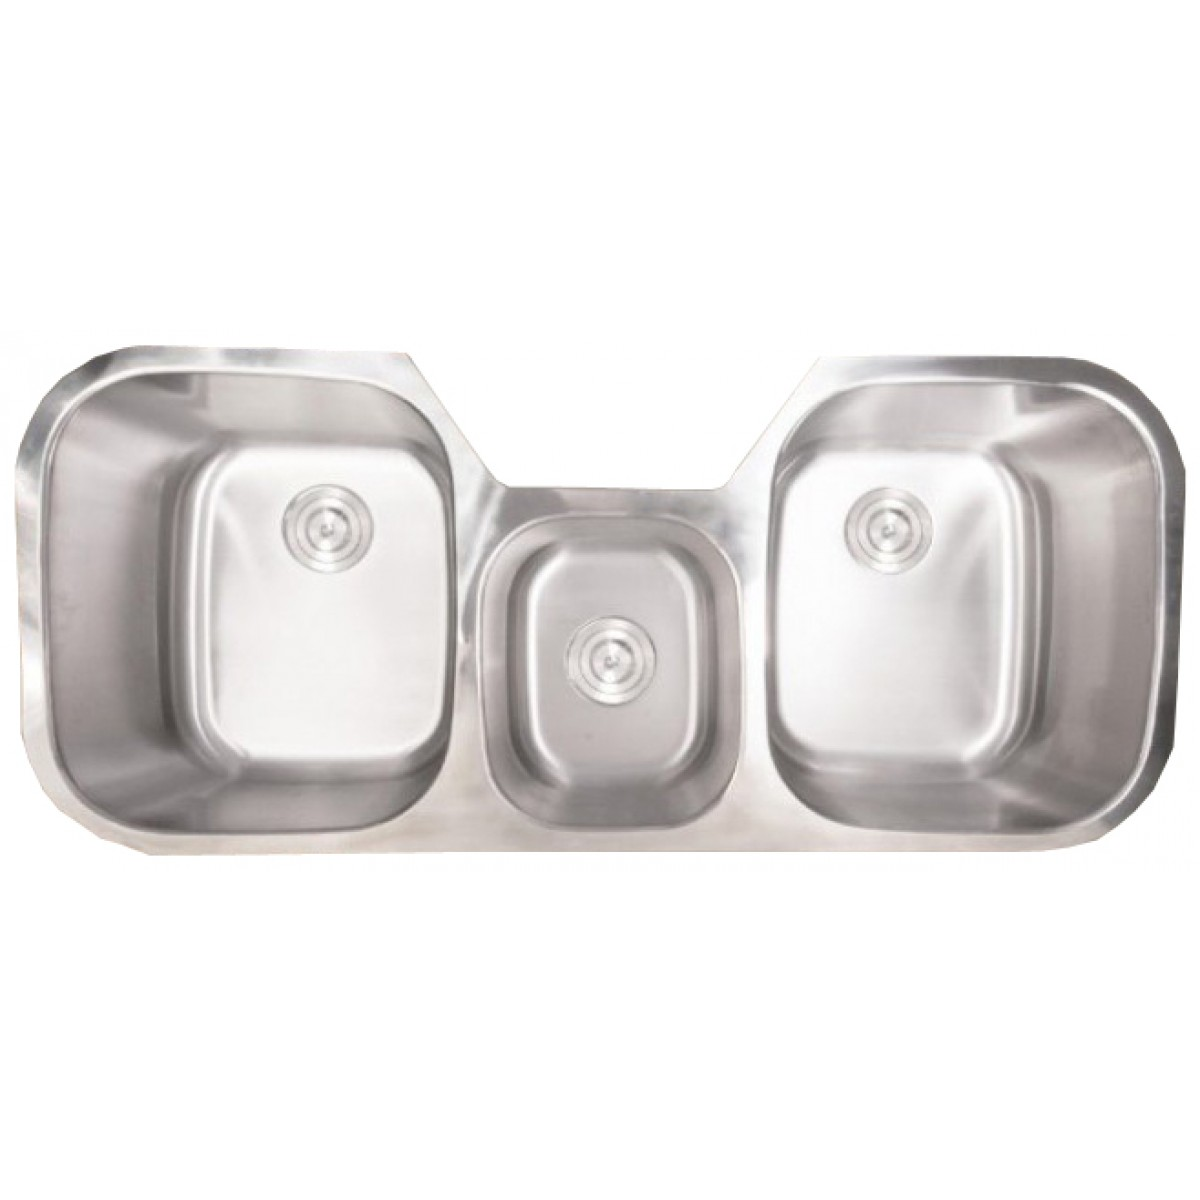 Bella 46 Inch Stainless Steel Undermount Triple Bowl